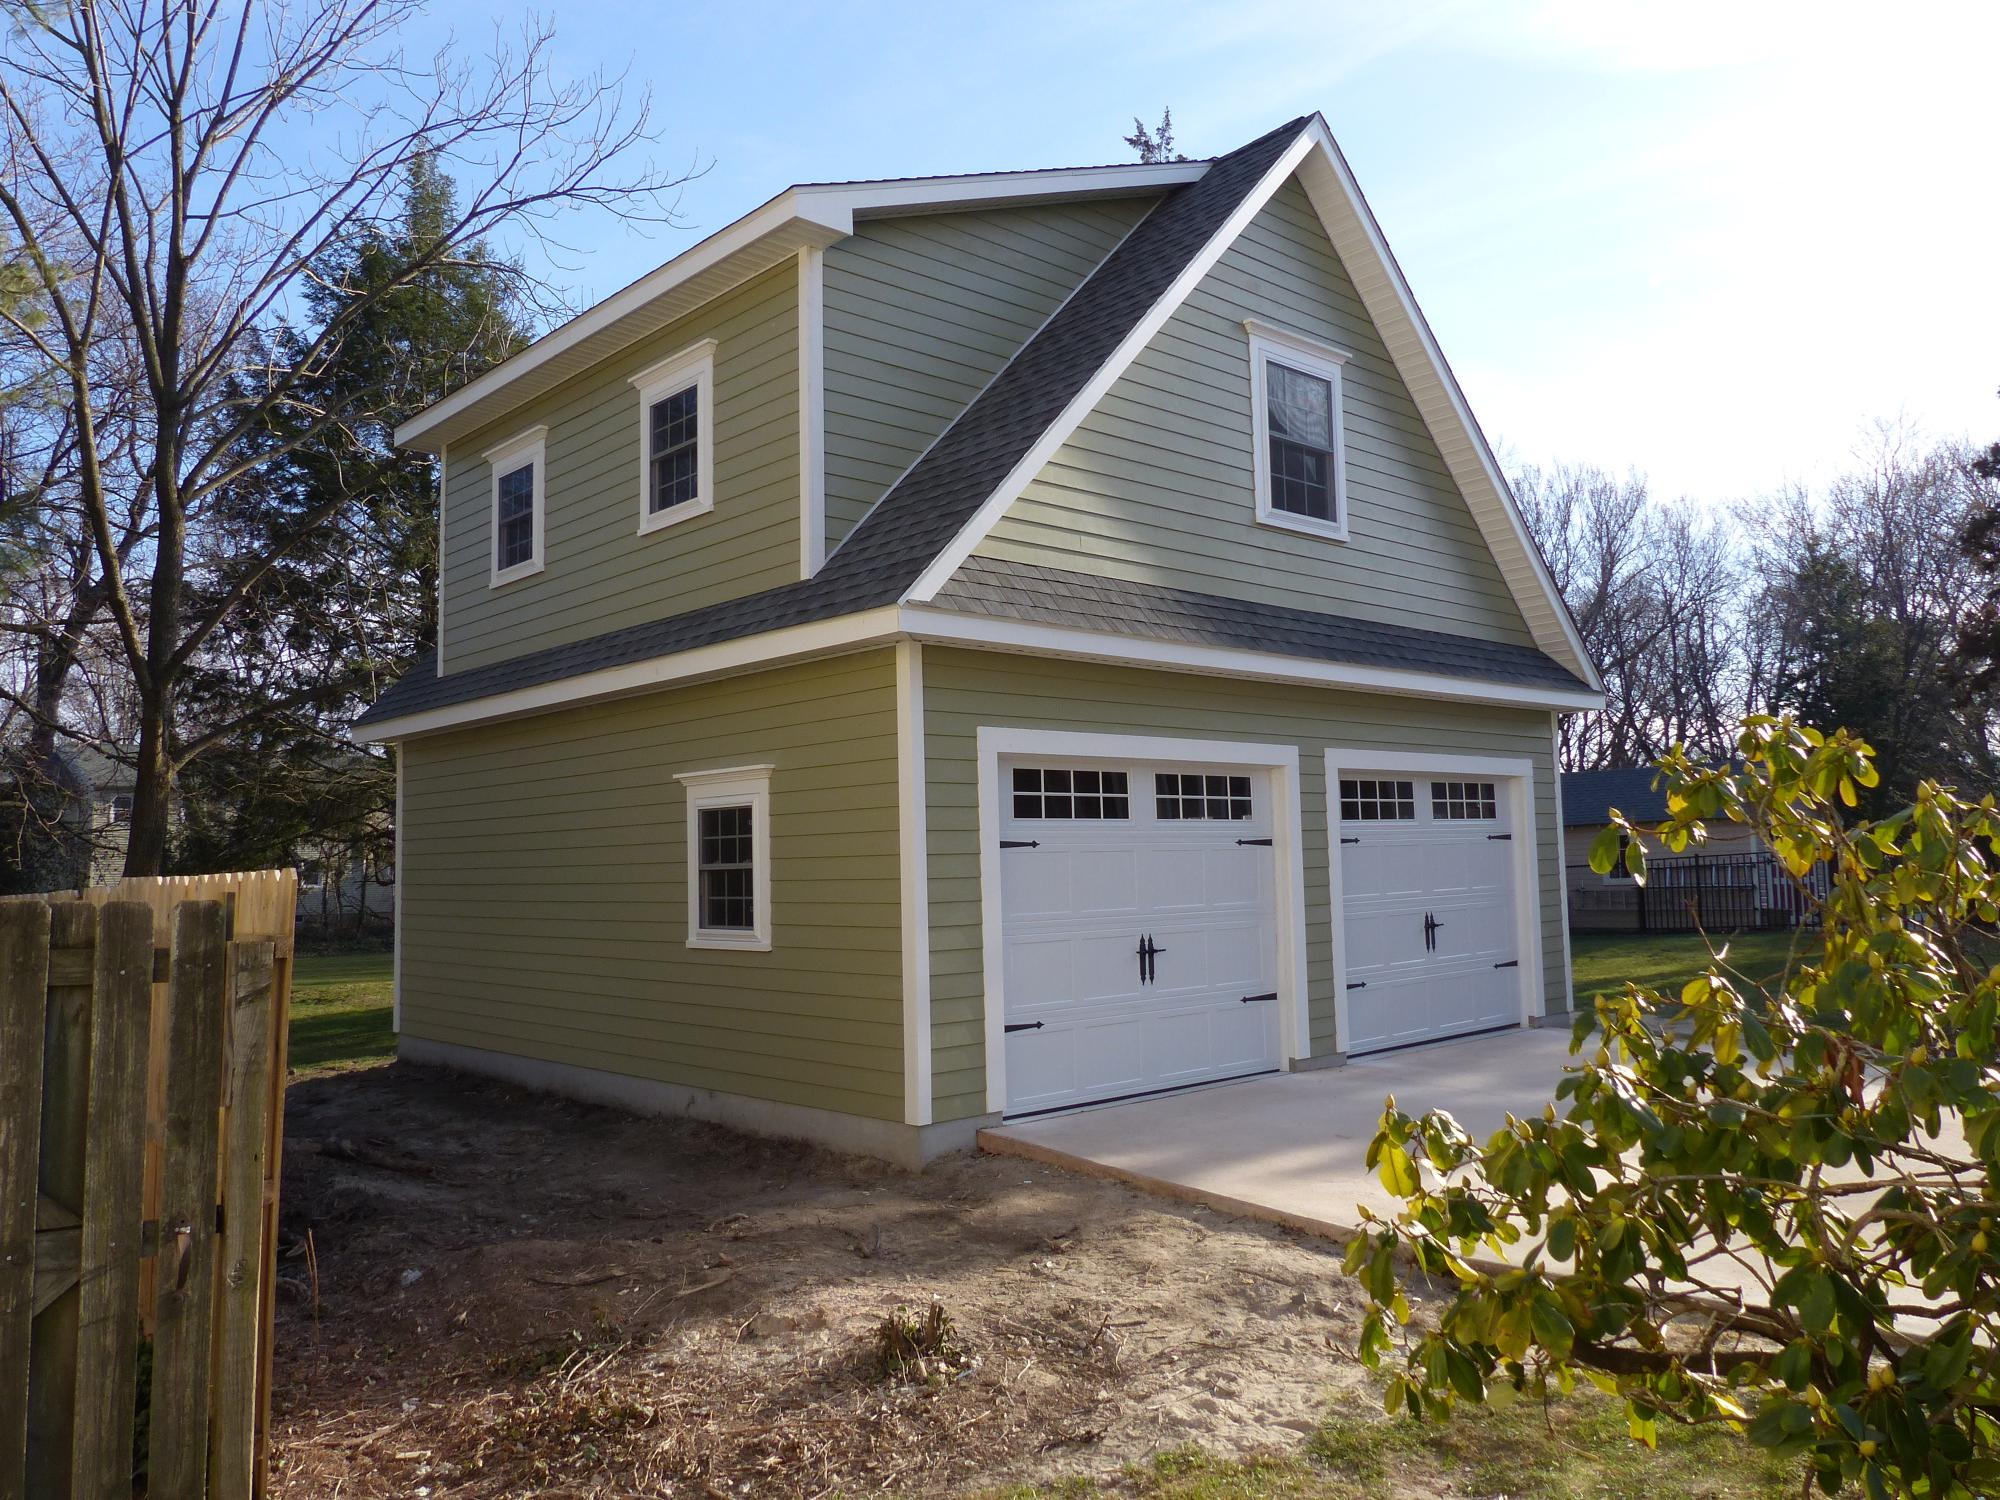 Specialized New Home Construction By Amish Builders: Amish Built Homes | Amish Builders | Amish Log Cabins